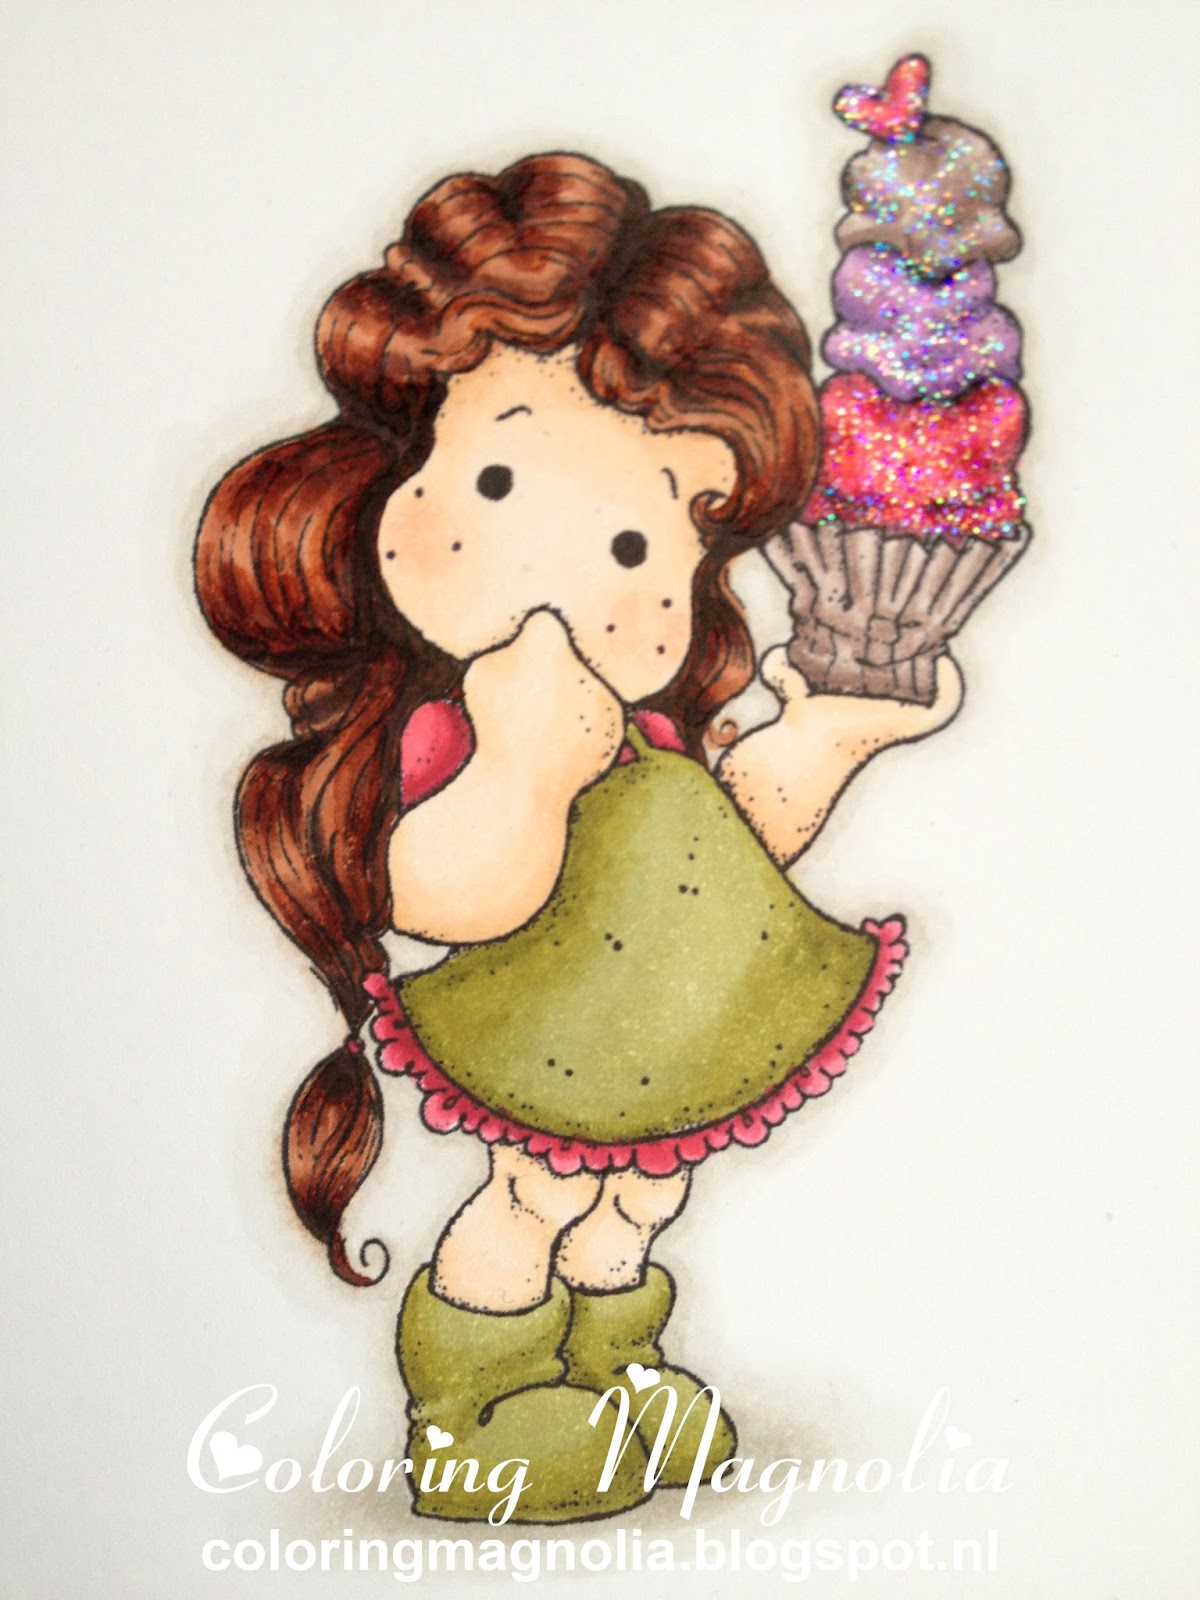 Coloring Magnolia Stamp 2013 With Love Collection - Tilda With Big Icecream